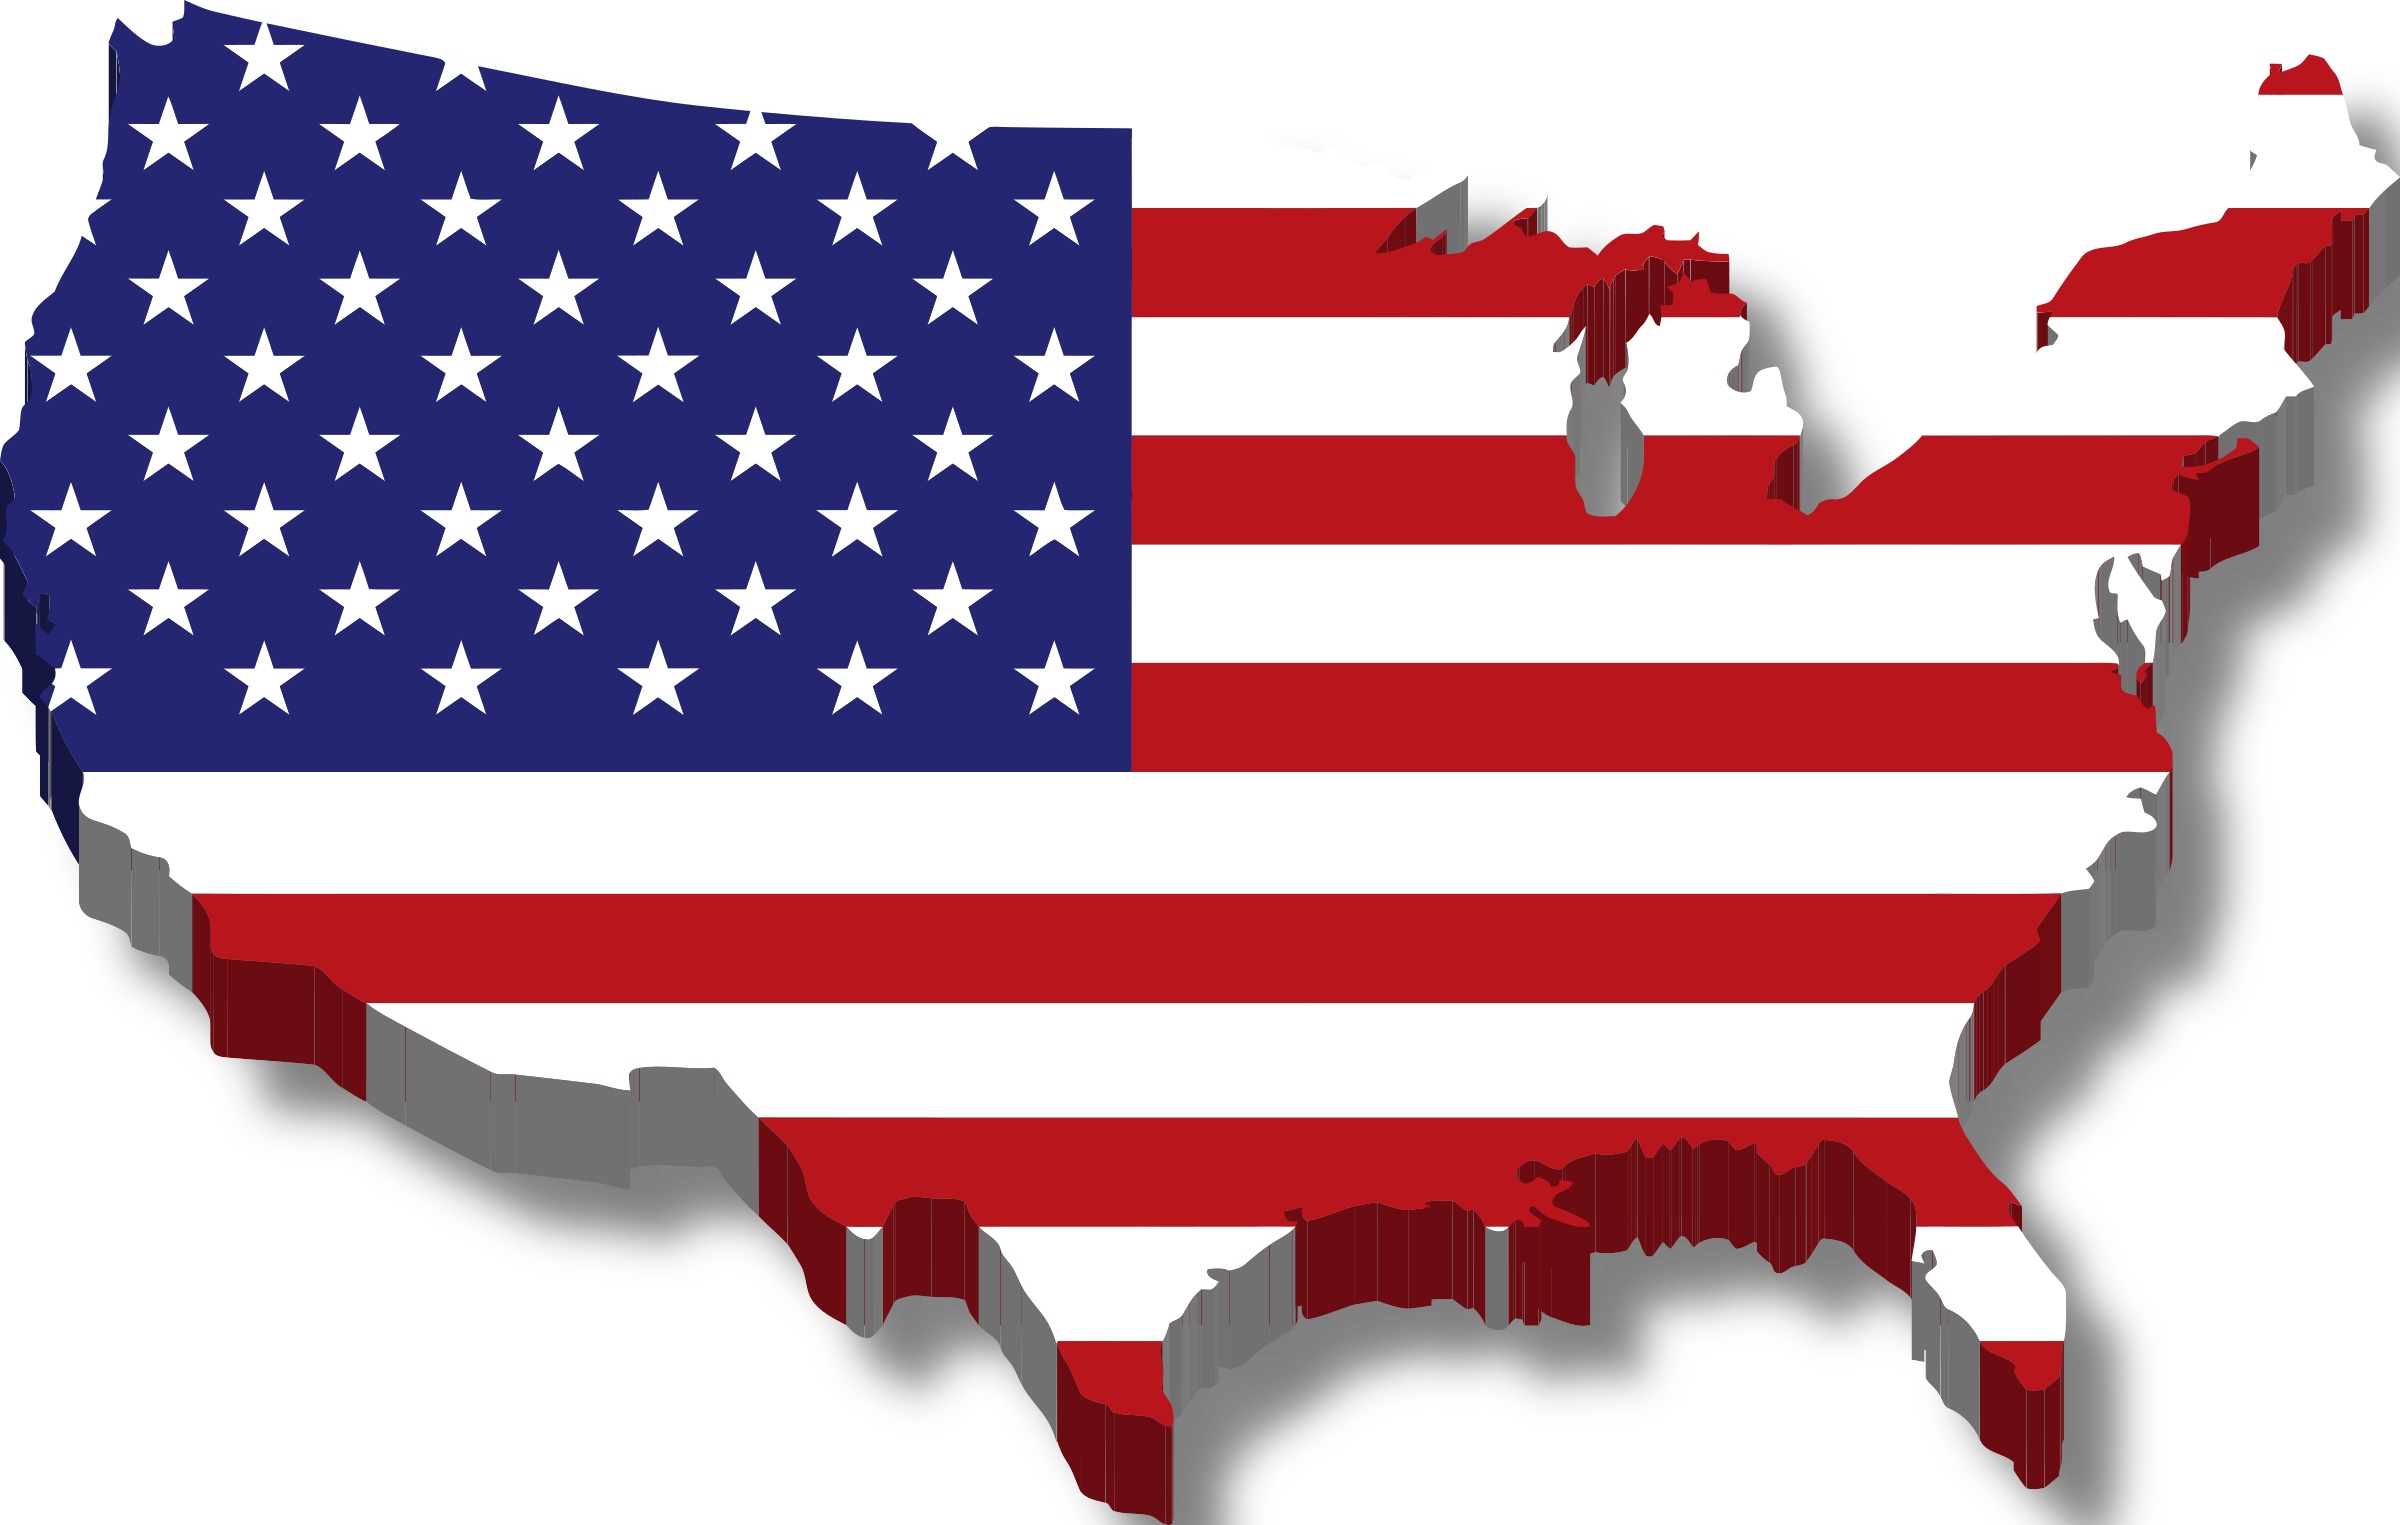 Culture clipart student. America map flag w